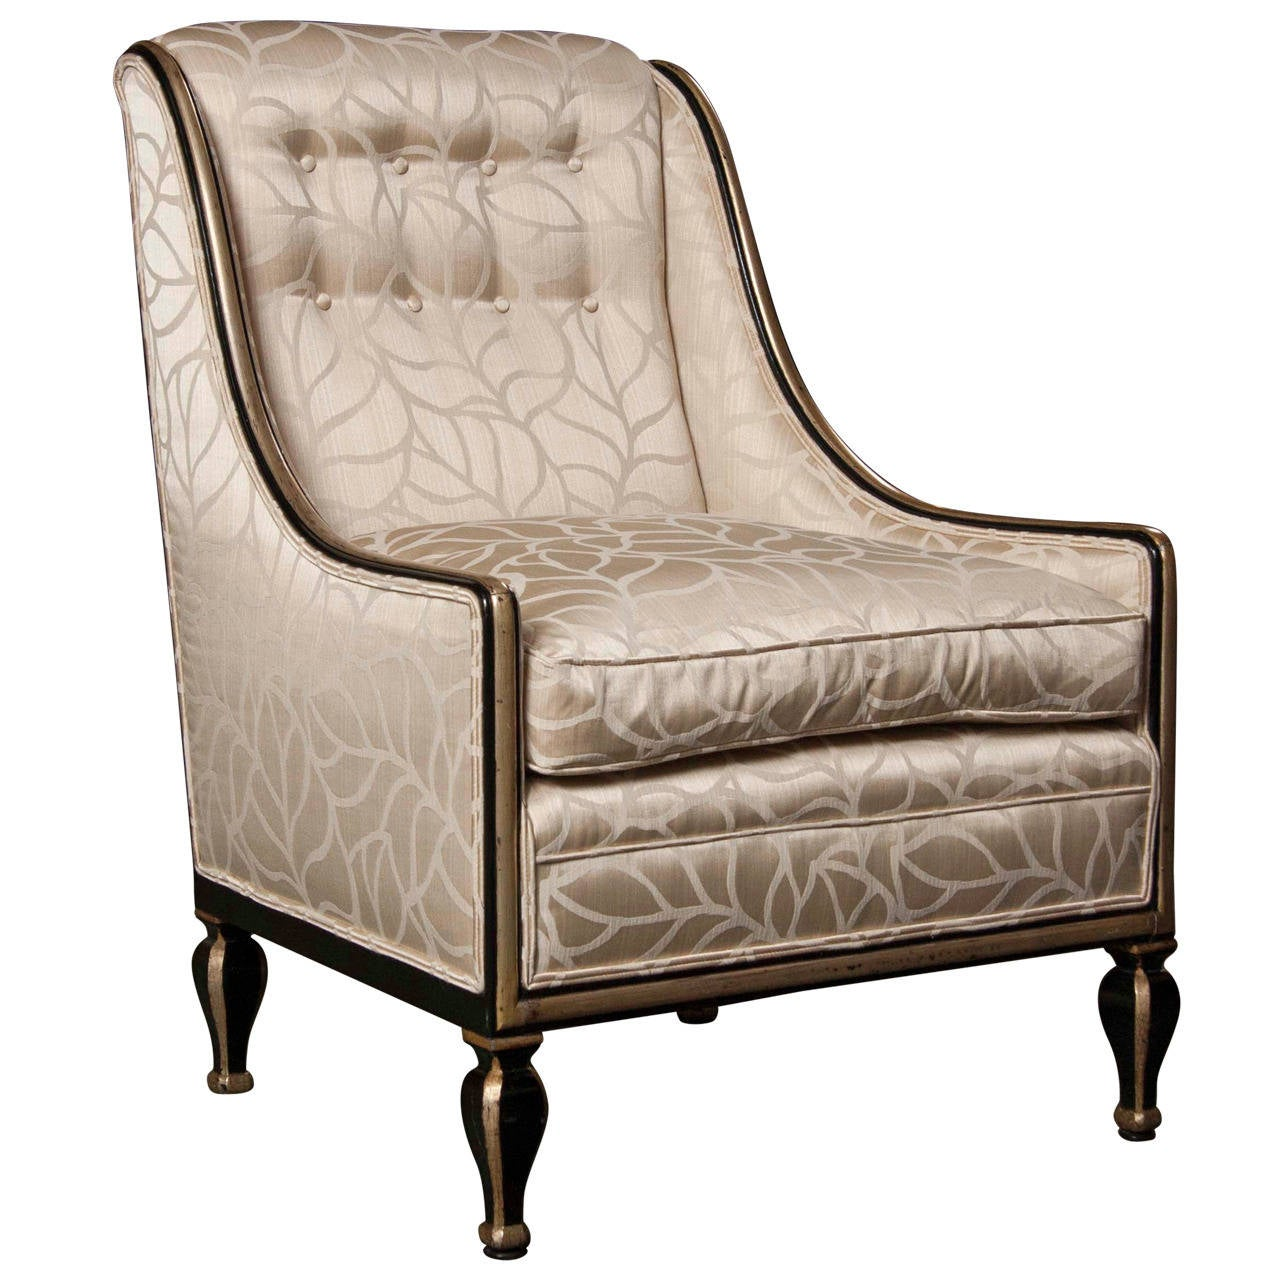 Beautifully Upholstered Art Deco Armchair